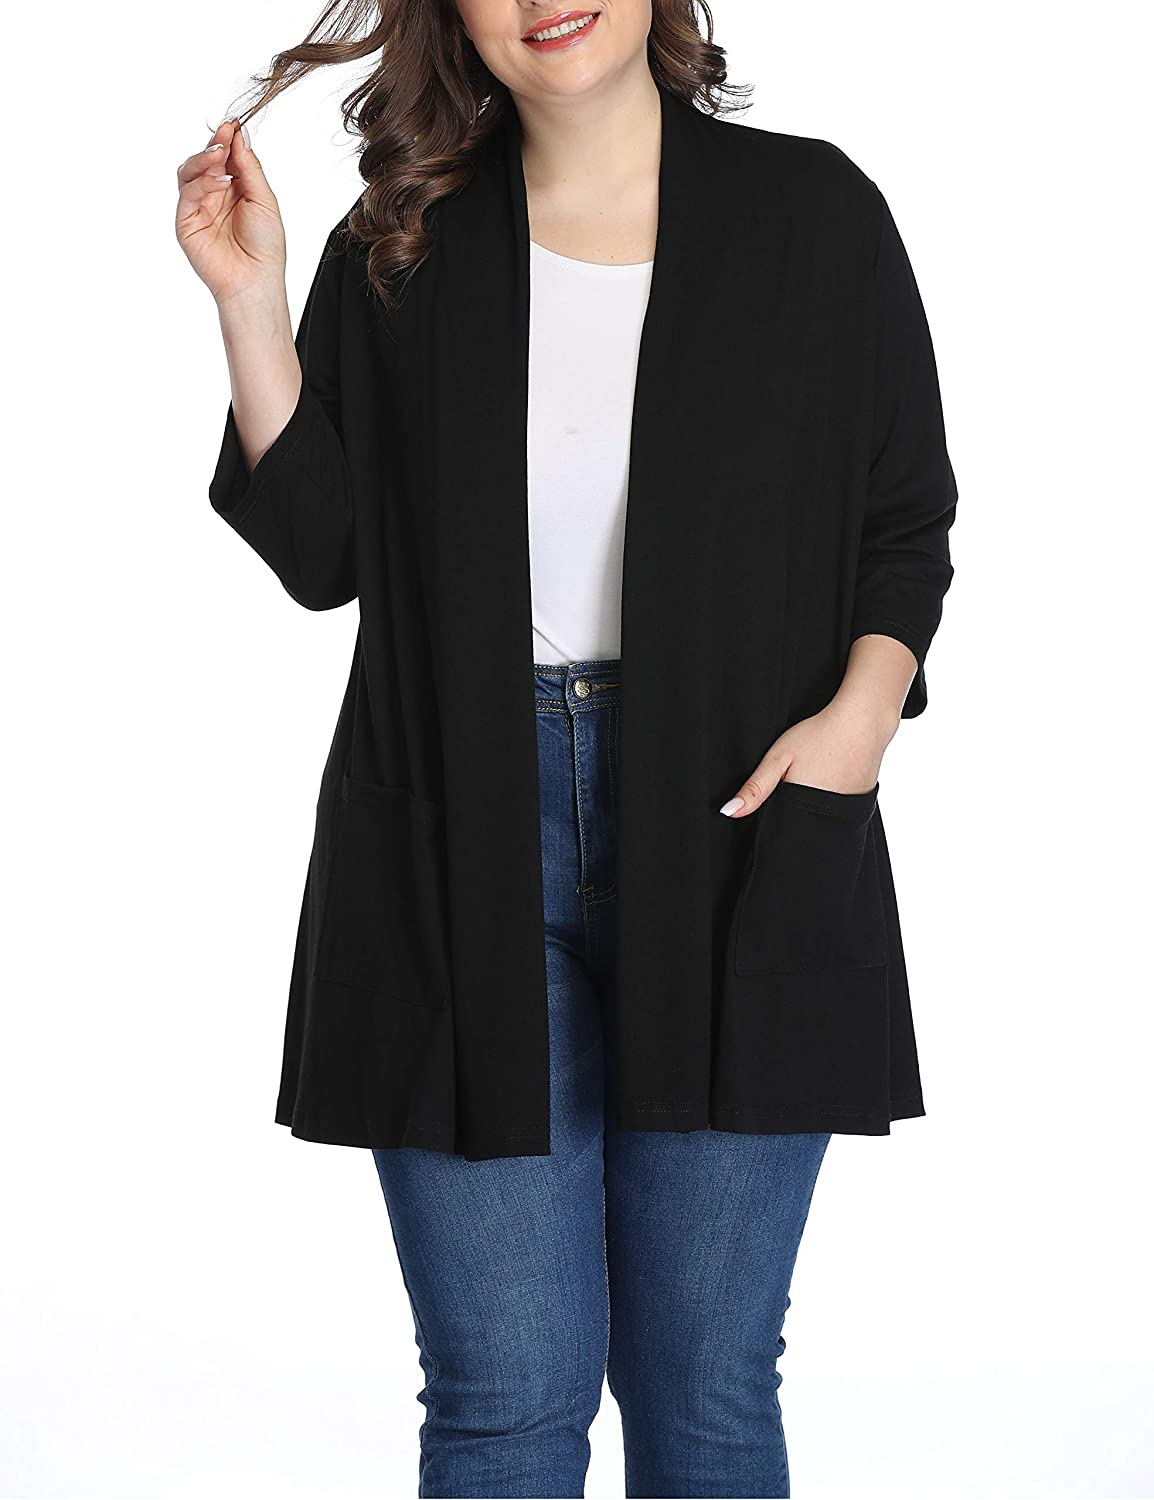 Shiaili Long Plus Size Cardigans for Women Easy to Wear Open Front Clothing